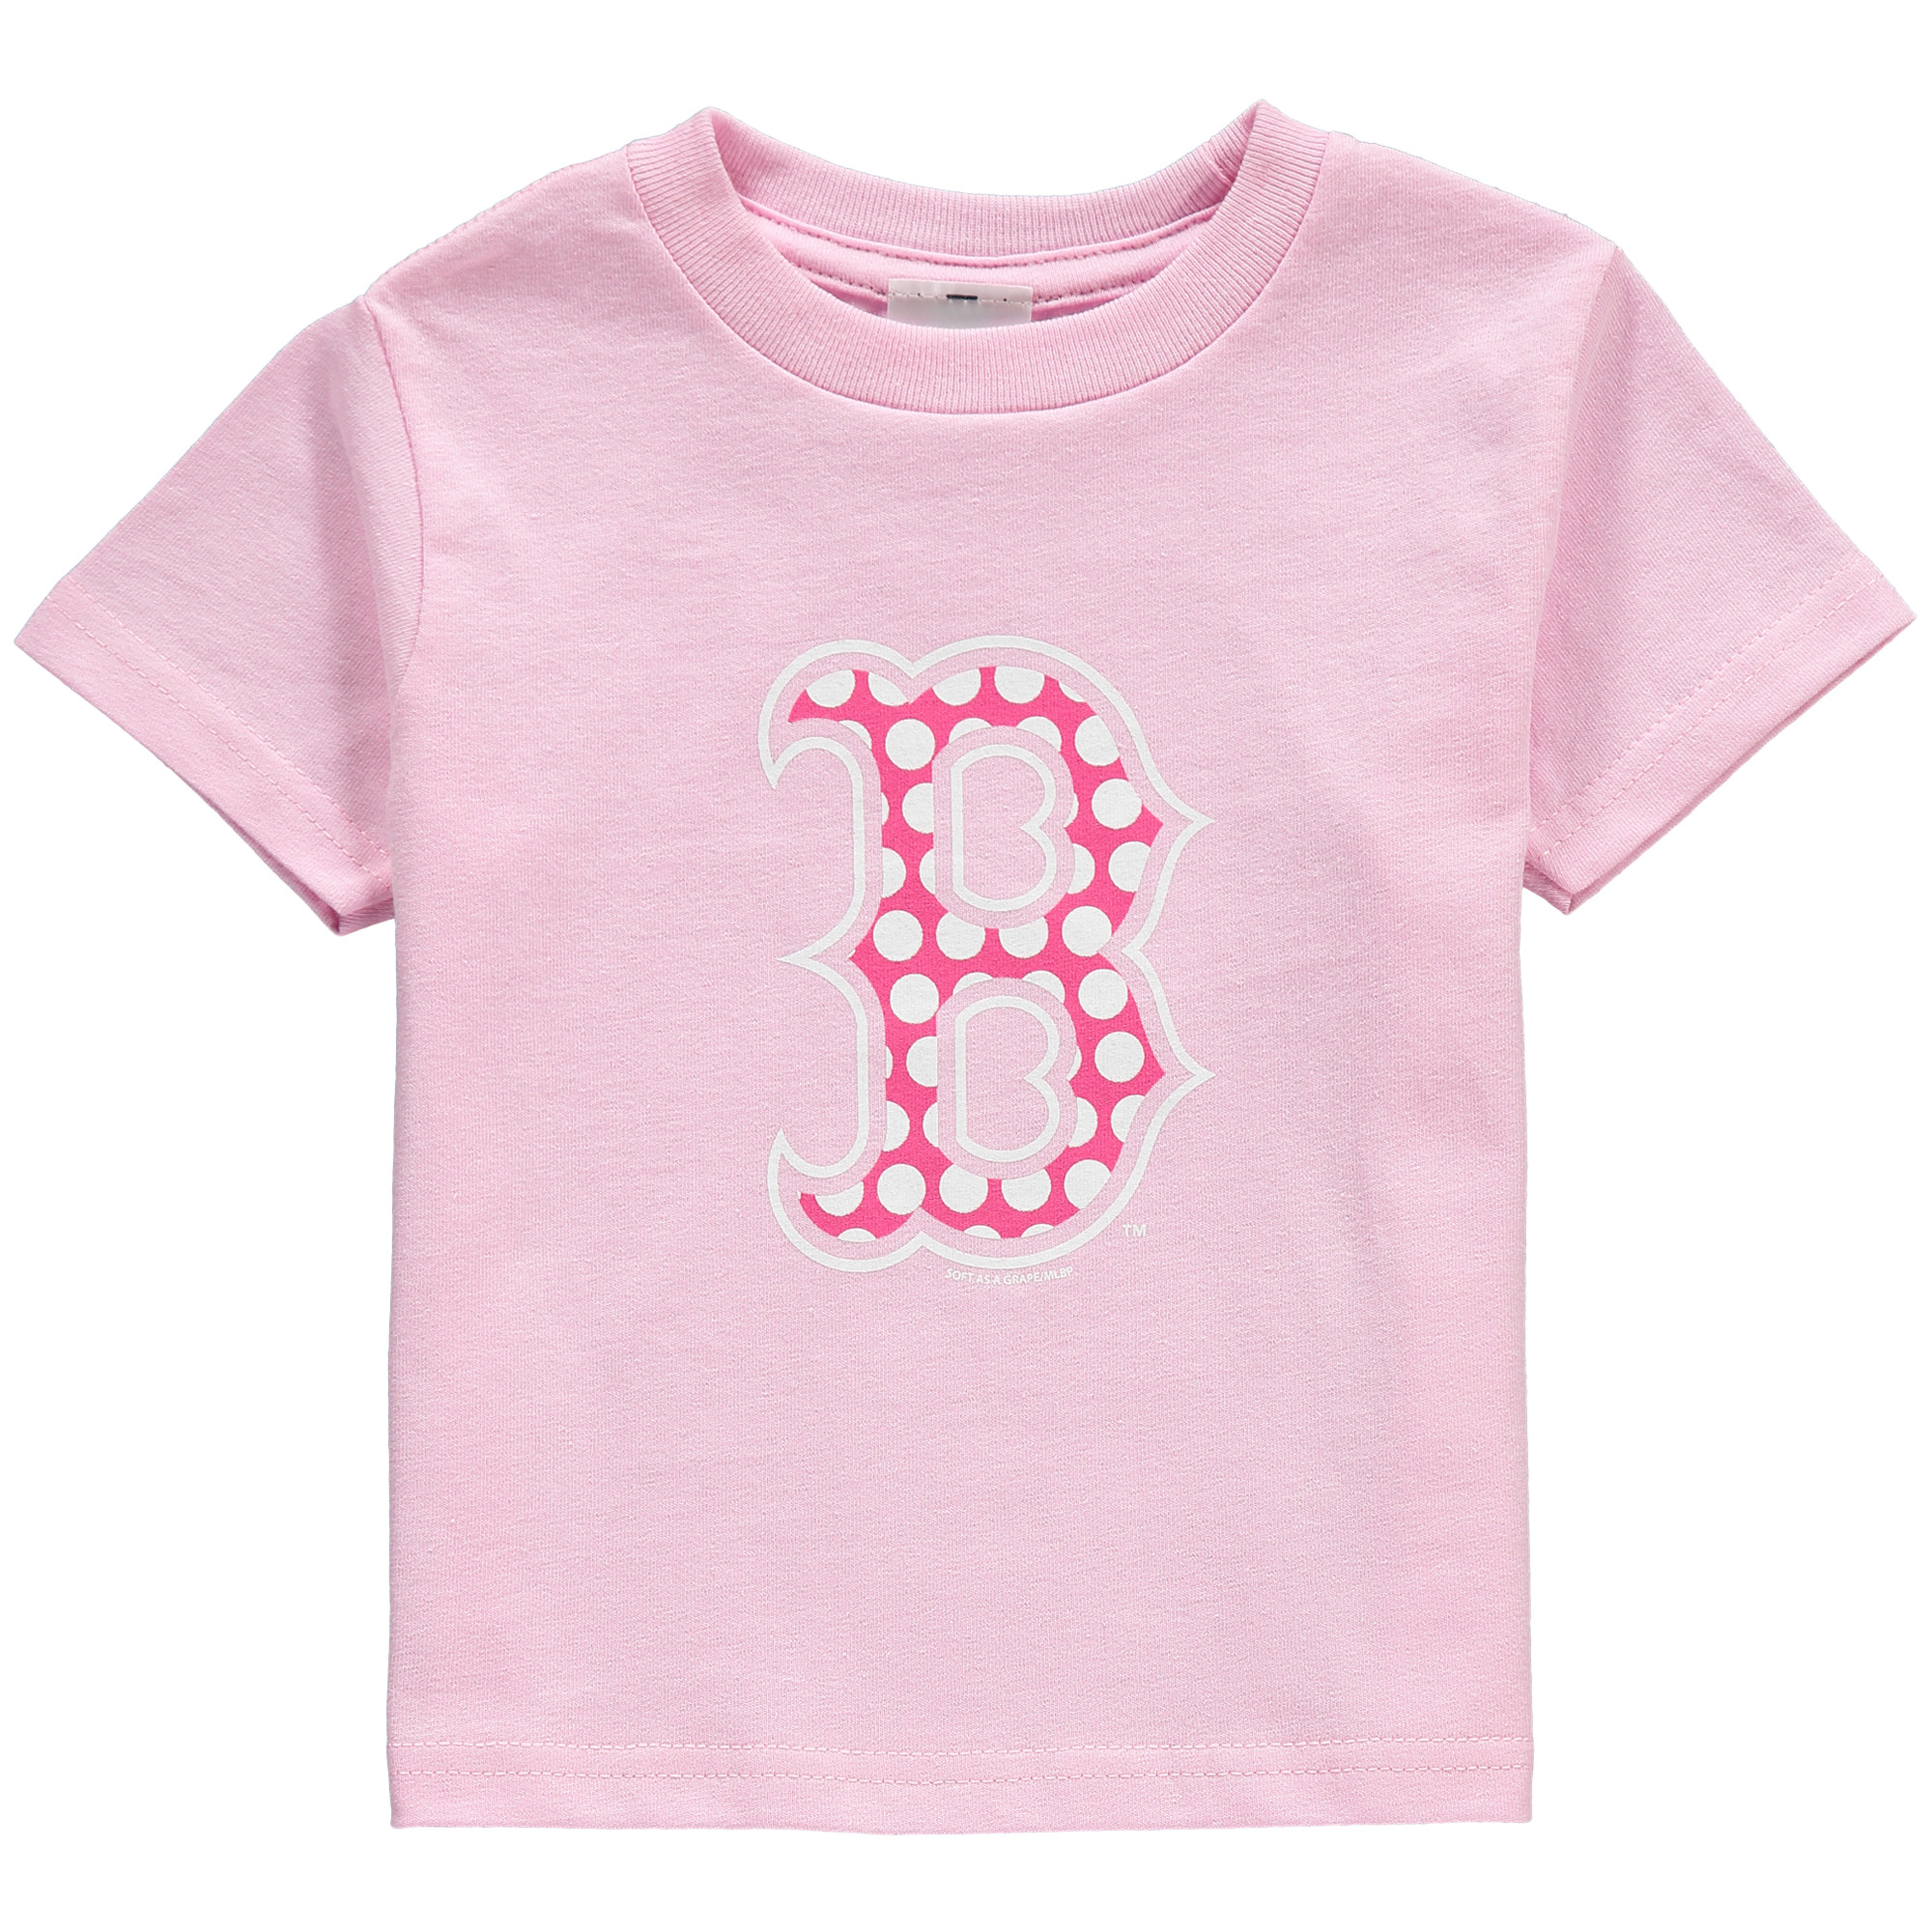 Boston Red Sox Soft as a Grape Toddler Girls Polka Dot Logo T-Shirt - Pink